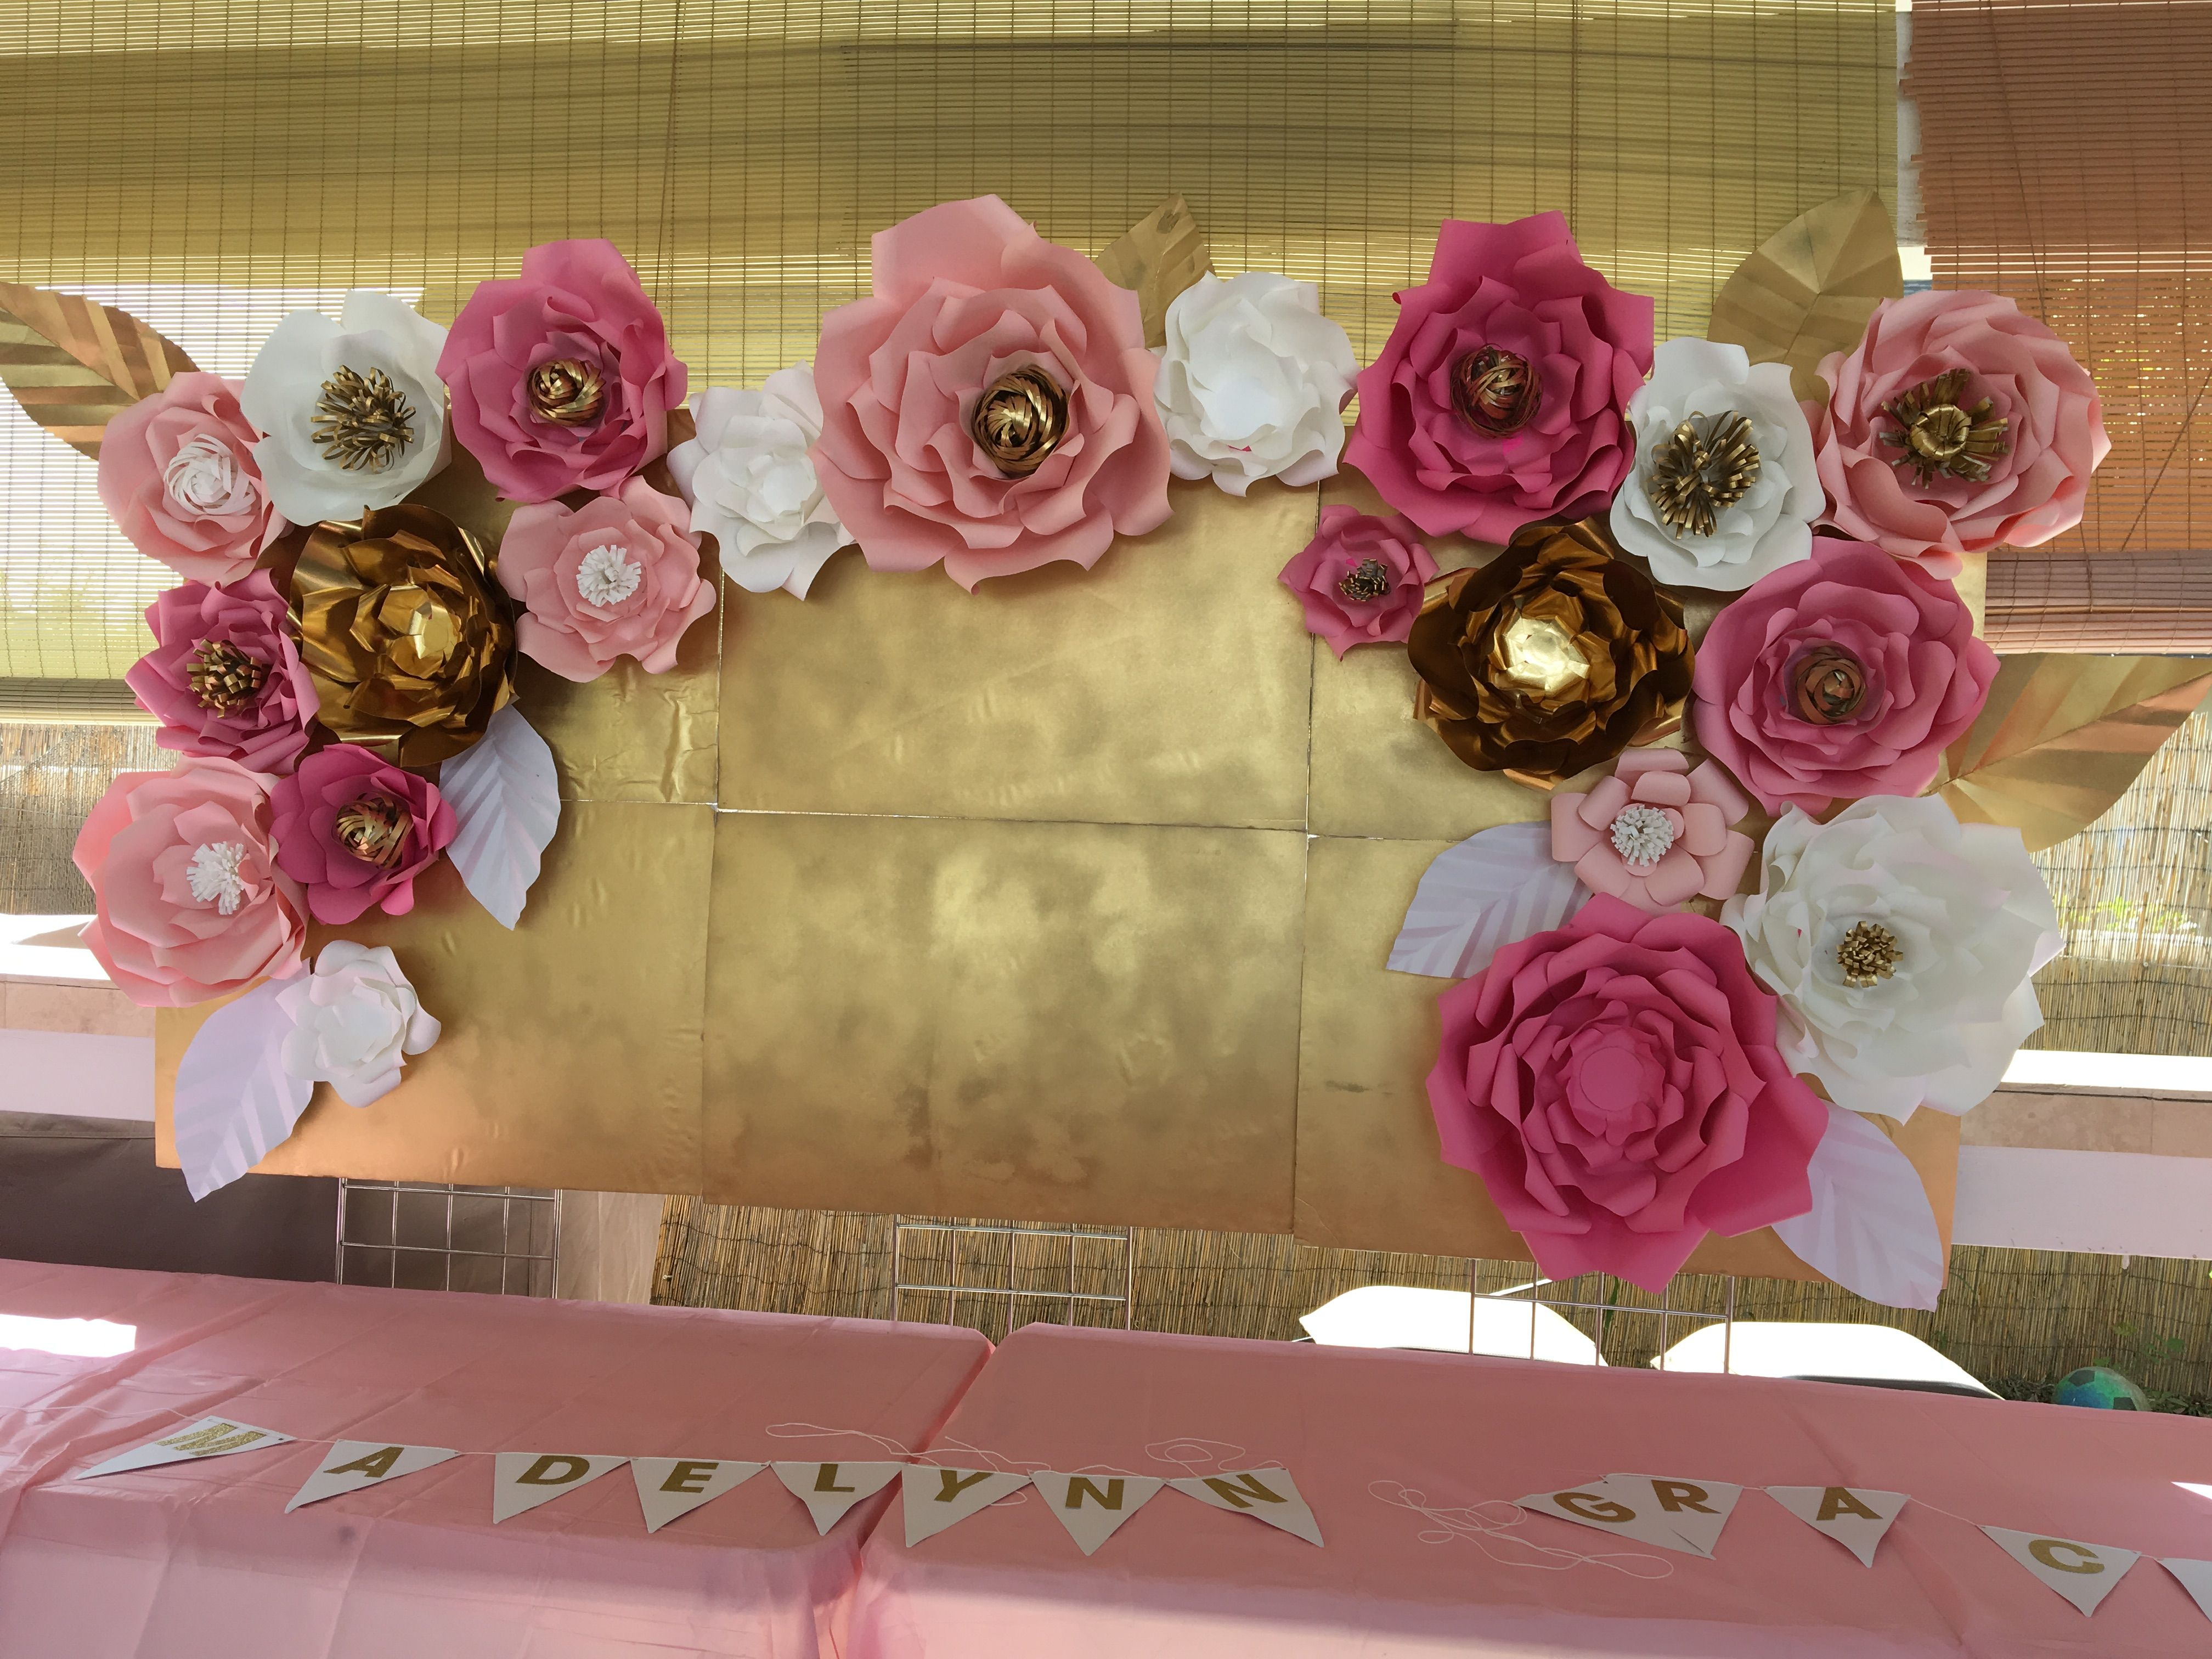 Paper Flowers Babyshower Candy Cake Or Photo Booth Backdrop Pink